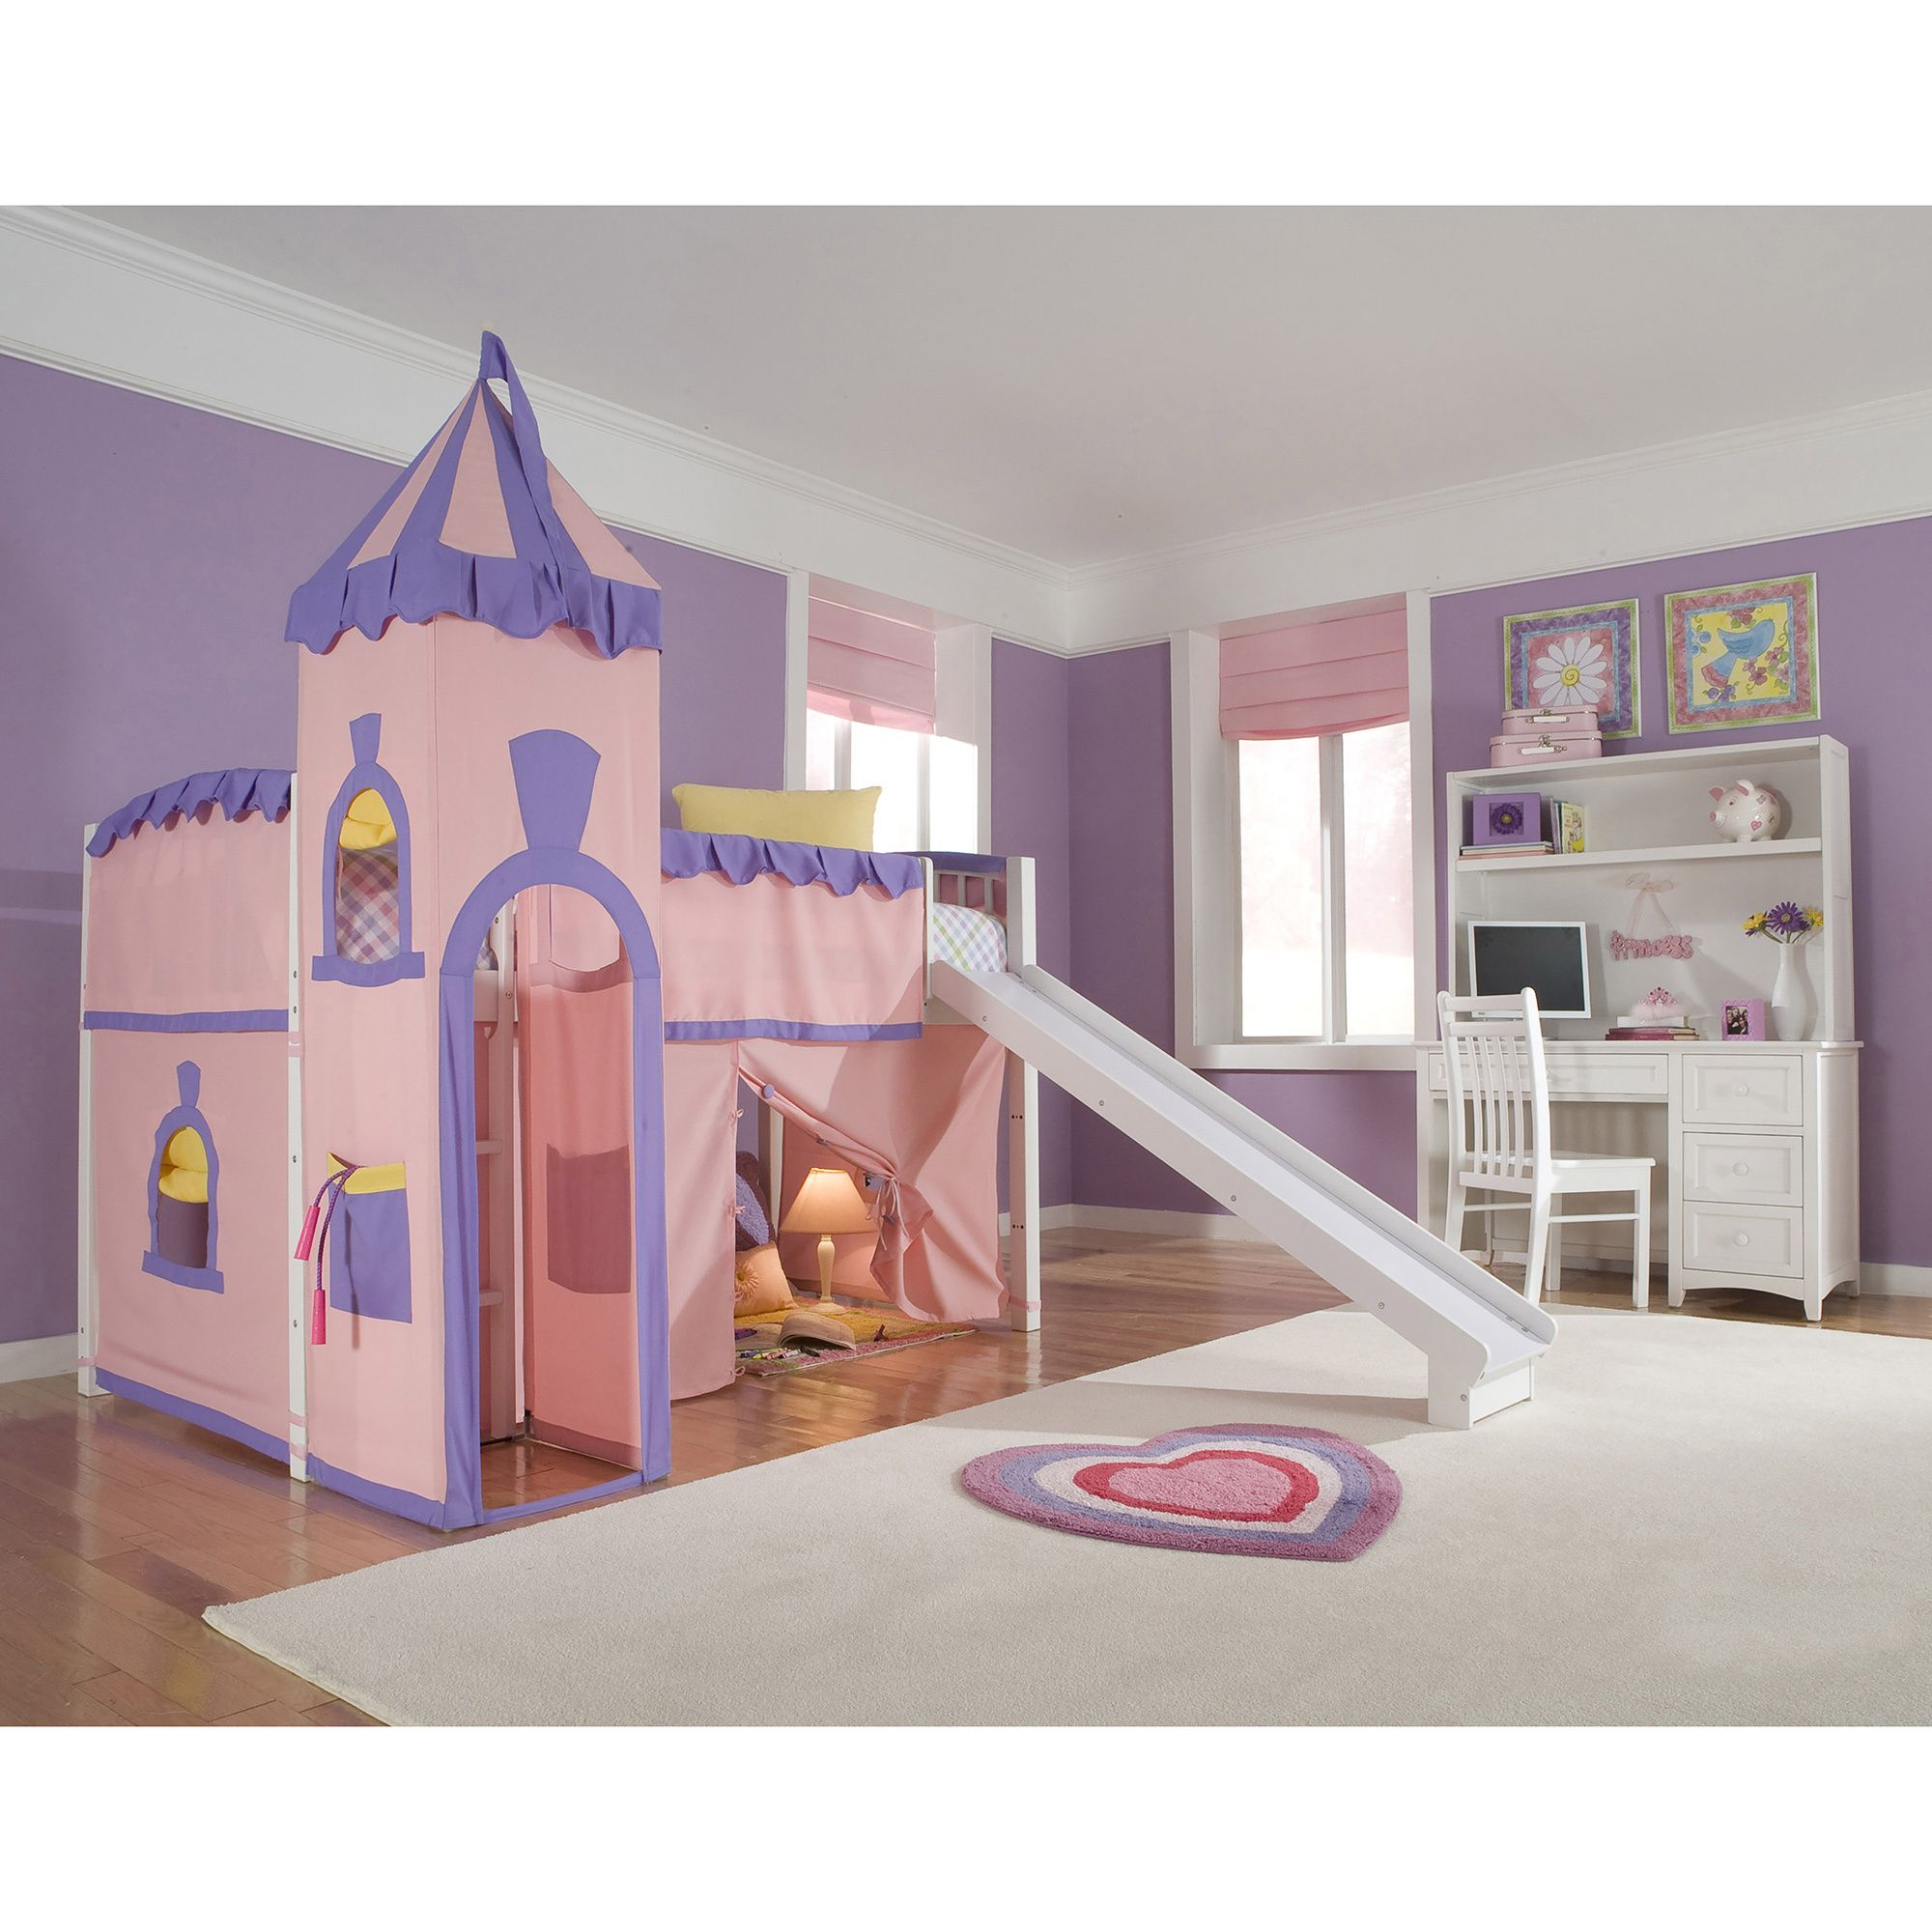 ne kids school house white junior loft with slide and princess tent